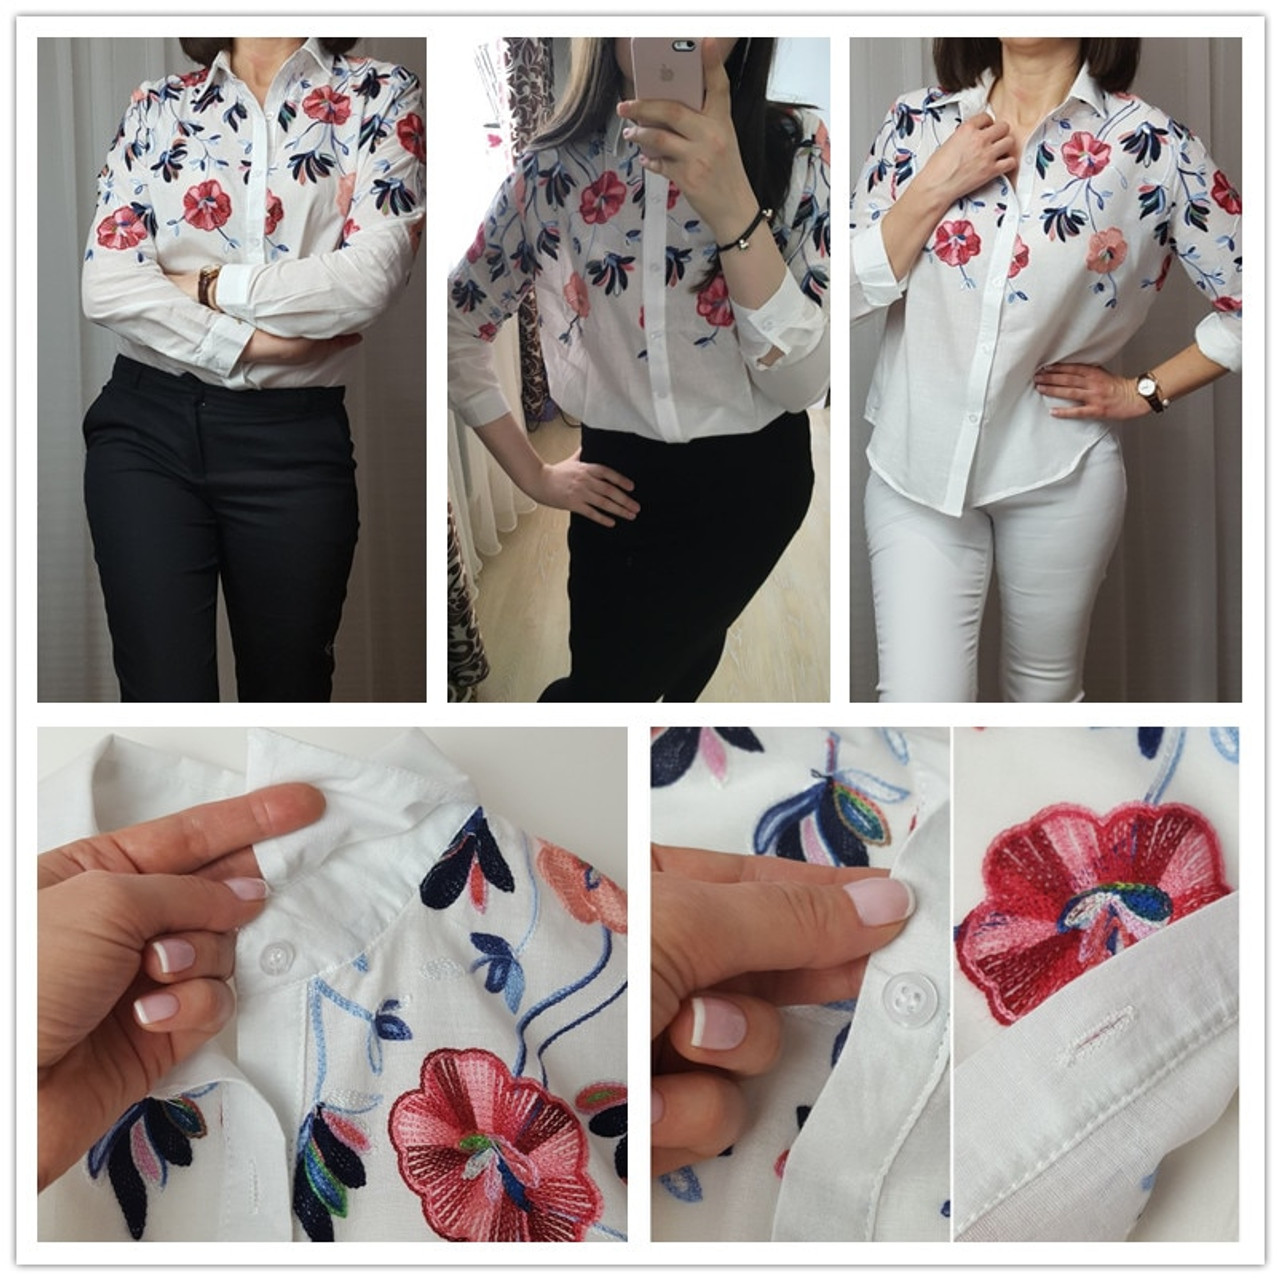 e760c702a9 ... Sheinside White Embroidery Long Sleeve Shirts Floral Button Top 2018  Spring Women Office Work Wear Elegant